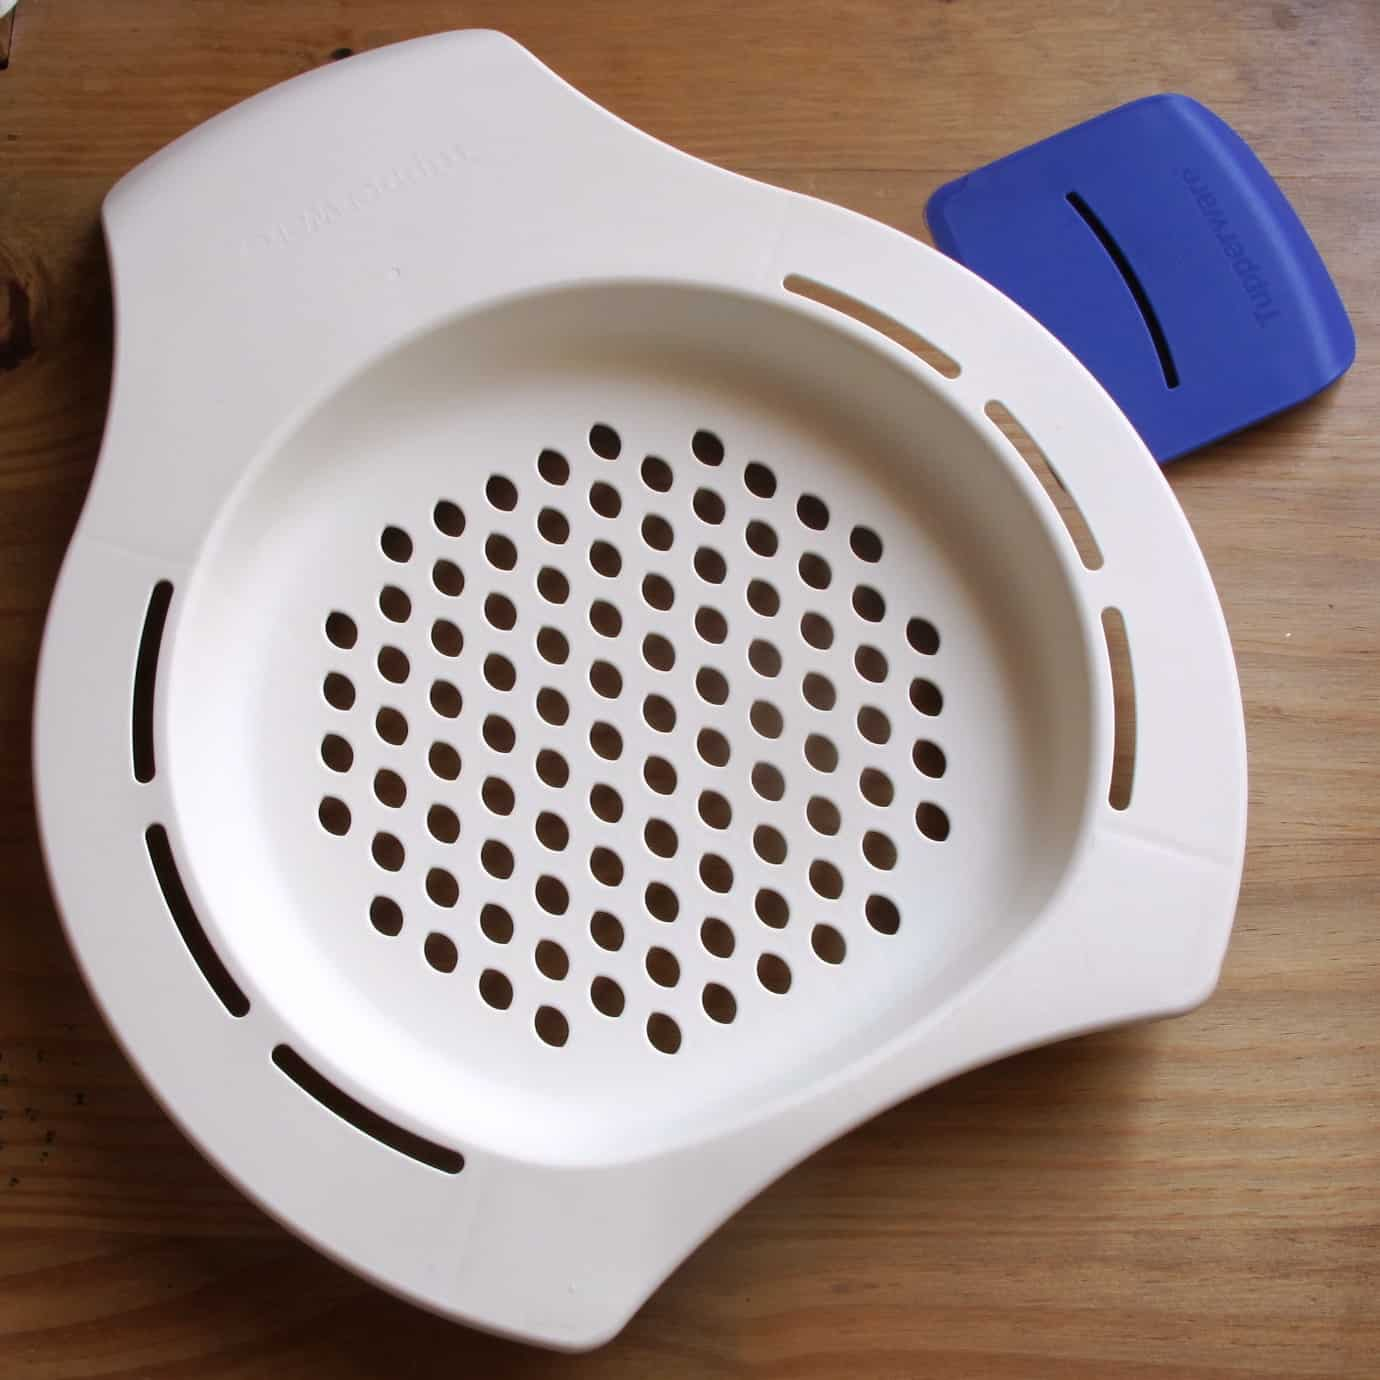 German Spätzle pasta maker